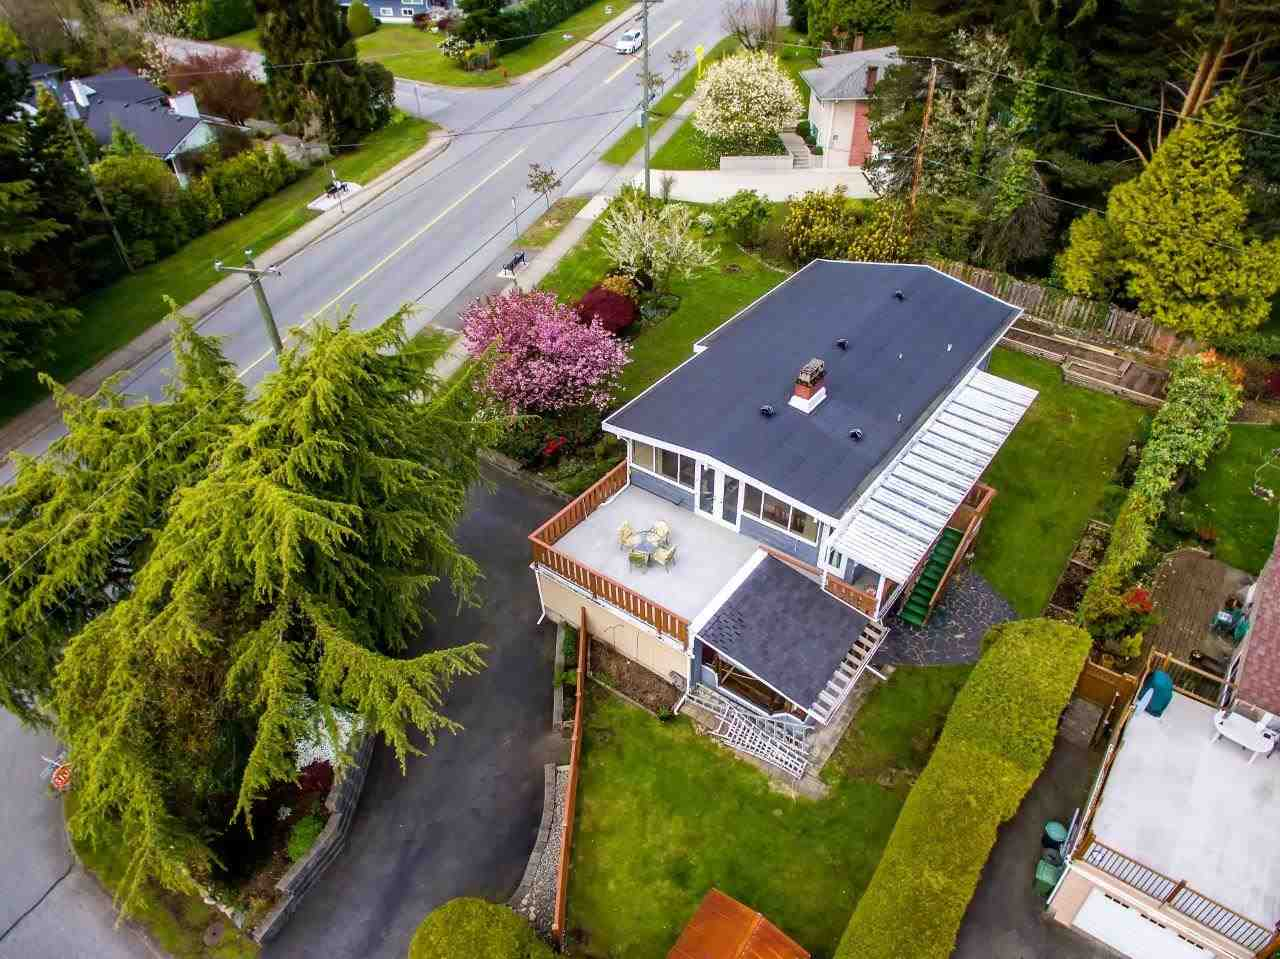 Photo 2: 3532 DELBROOK Avenue in North Vancouver: Delbrook House for sale : MLS(r) # R2163103